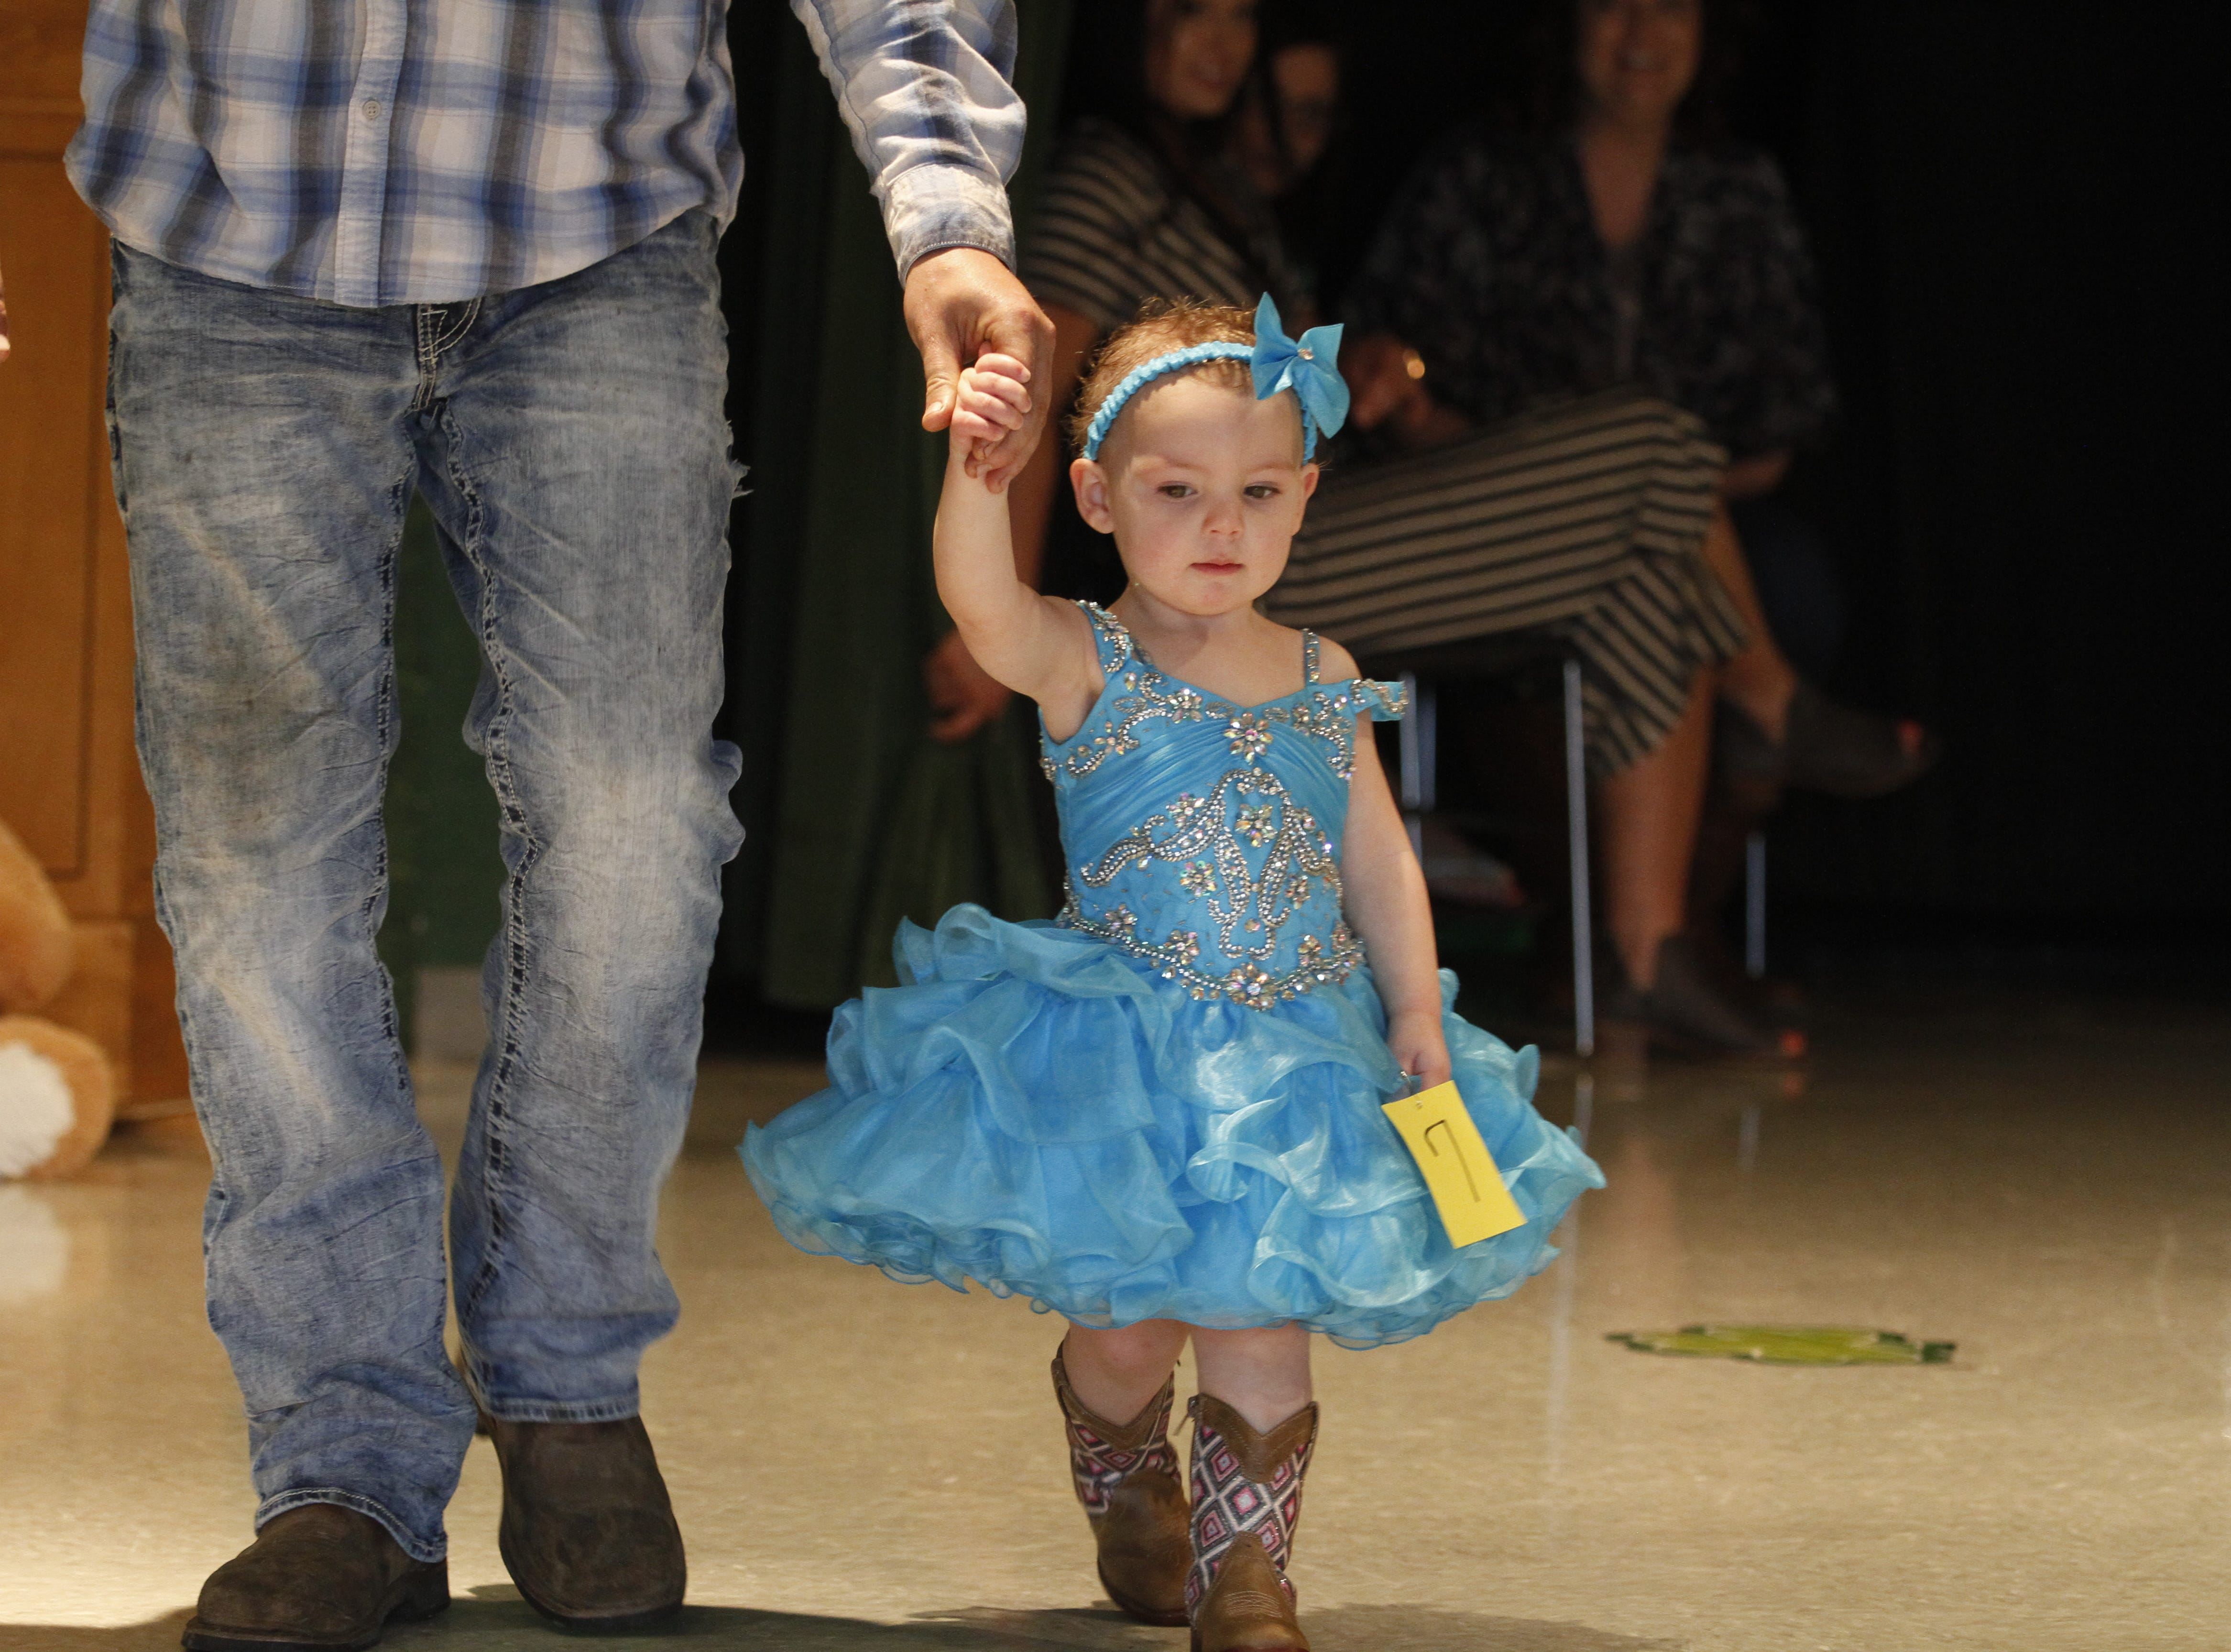 Aubree Richardson is escorted by Taylor Richardson as she competes in the Houston County Tiny Princess 1-year-old group during the 2019 Houston County Tiny Prince, Tiny Princess Pageant at Houston County High School, on Saturday, March 2, 2019 in Erin, Tenn.